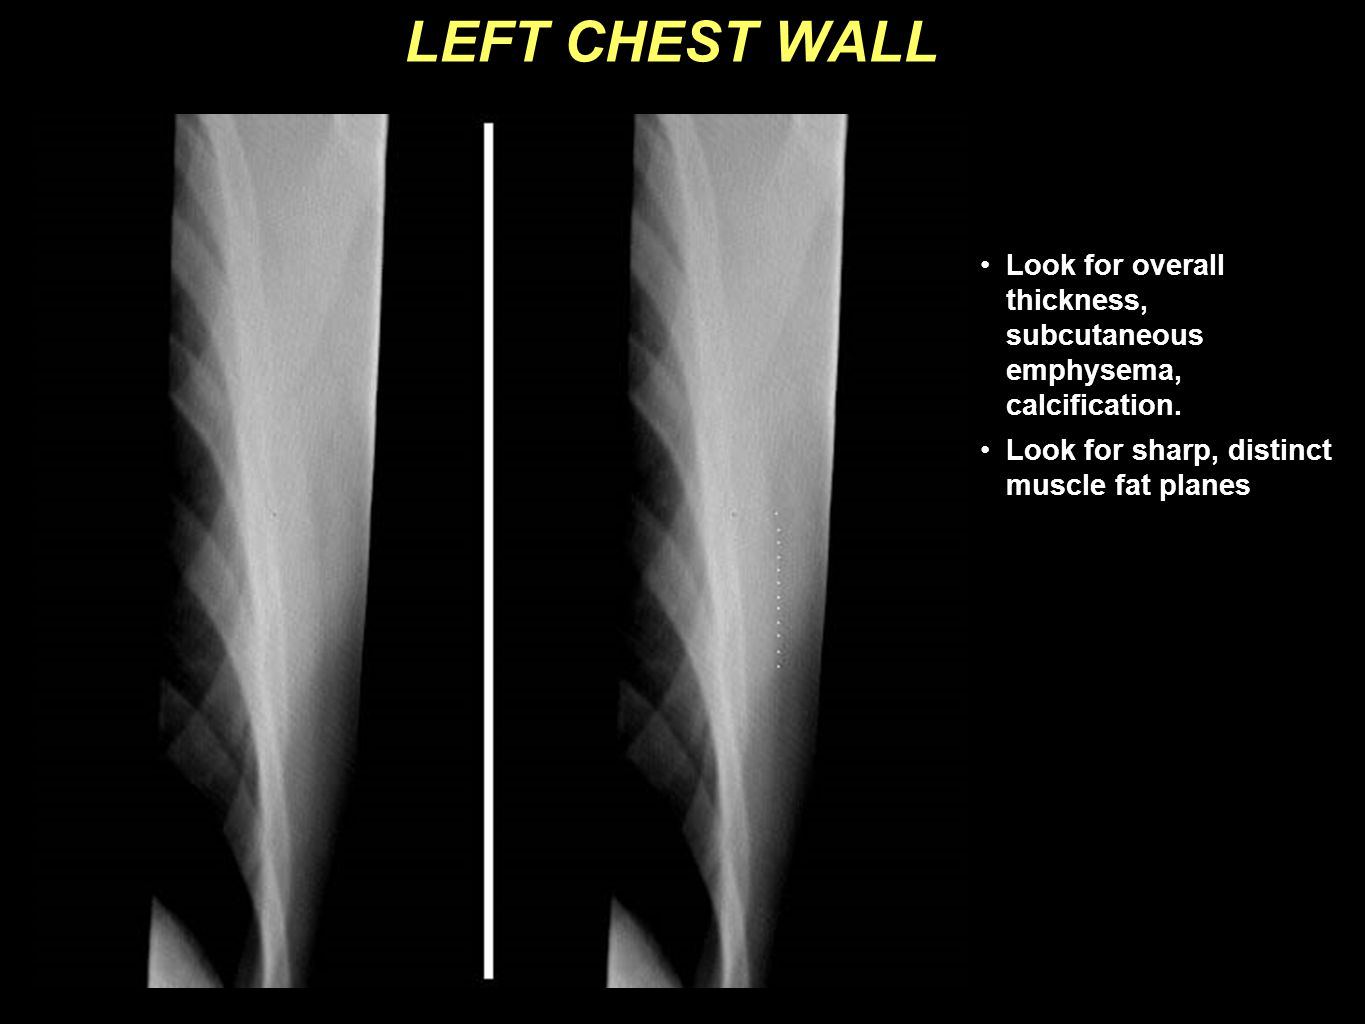 LEFT CHEST WALL Look for overall thickness, subcutaneous emphysema, calcification. Look for sharp, distinct muscle fat planes